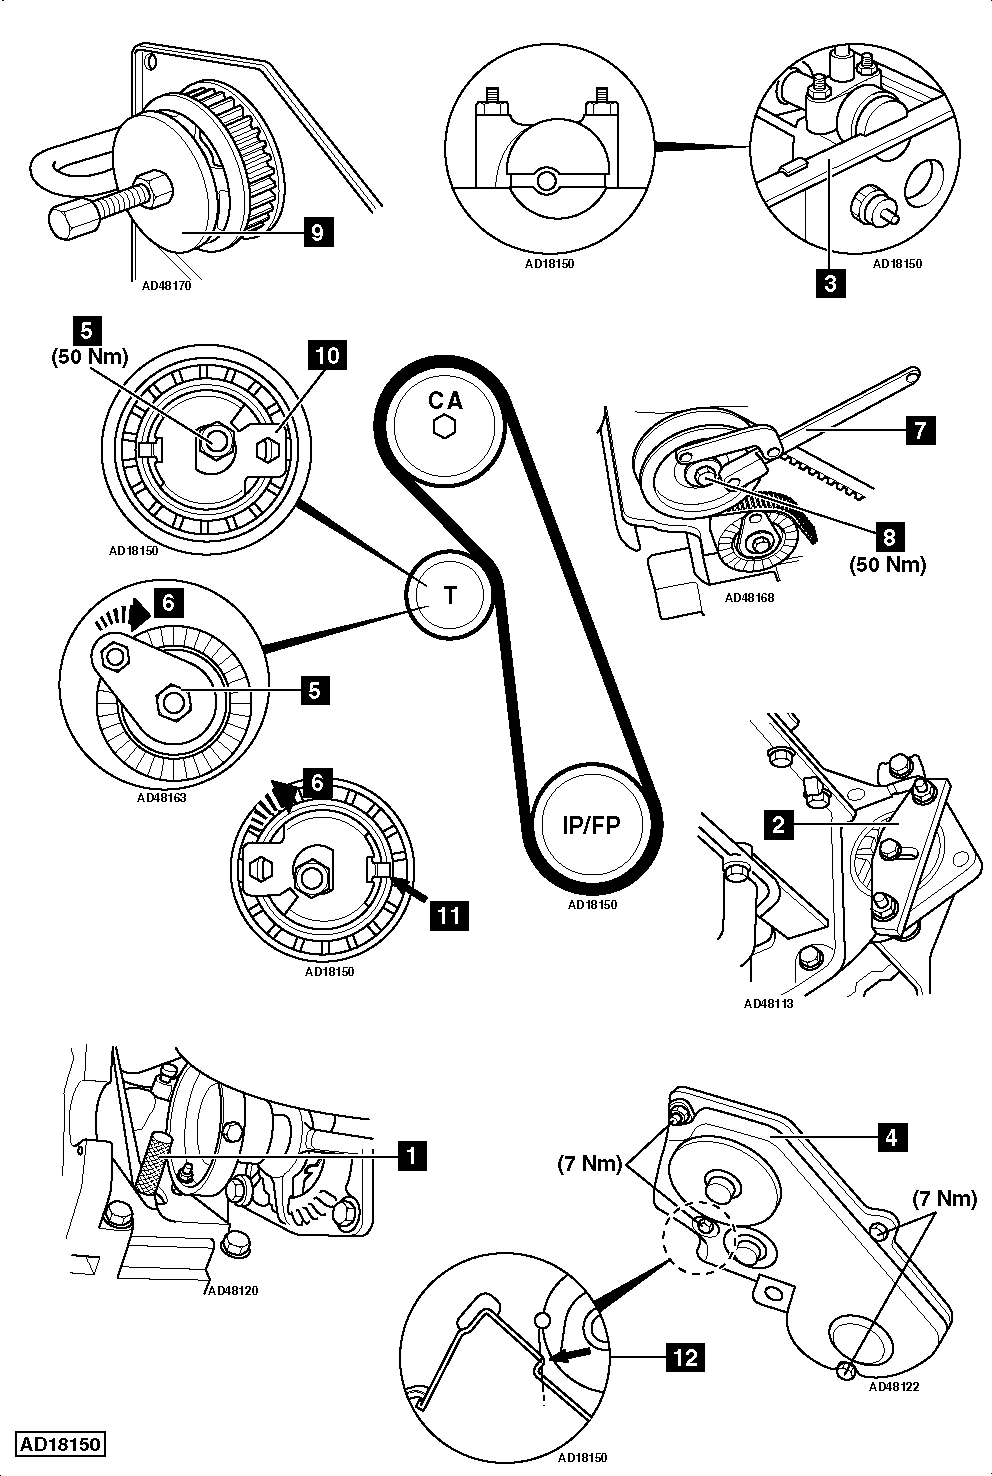 2002 Jaguar Xkr Parts Diagrams moreover Canter Truck Diagram Html likewise 7C 7C  saturnfans   7Cphotos 7Cdata 7C500 7Cmedium 7Cecotec2 2 timing marks also 2002 moreover How To Replace Timing Belt On Ford Focus 1 8 Tddi 1999 2005. on 2002 land rover freelander timing belt